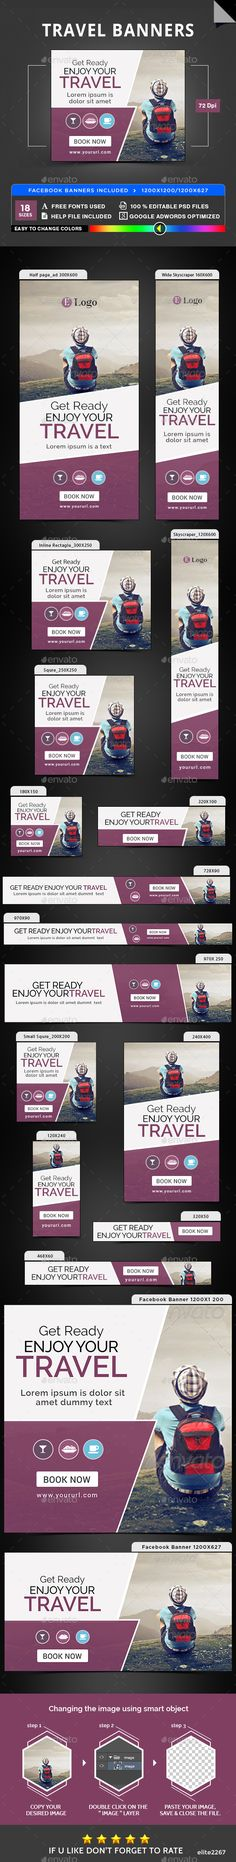 Travel Banners — Photoshop PSD #banners #sales • Available here → https://graphicriver.net/item/travel-banners/19975920?ref=pxcr